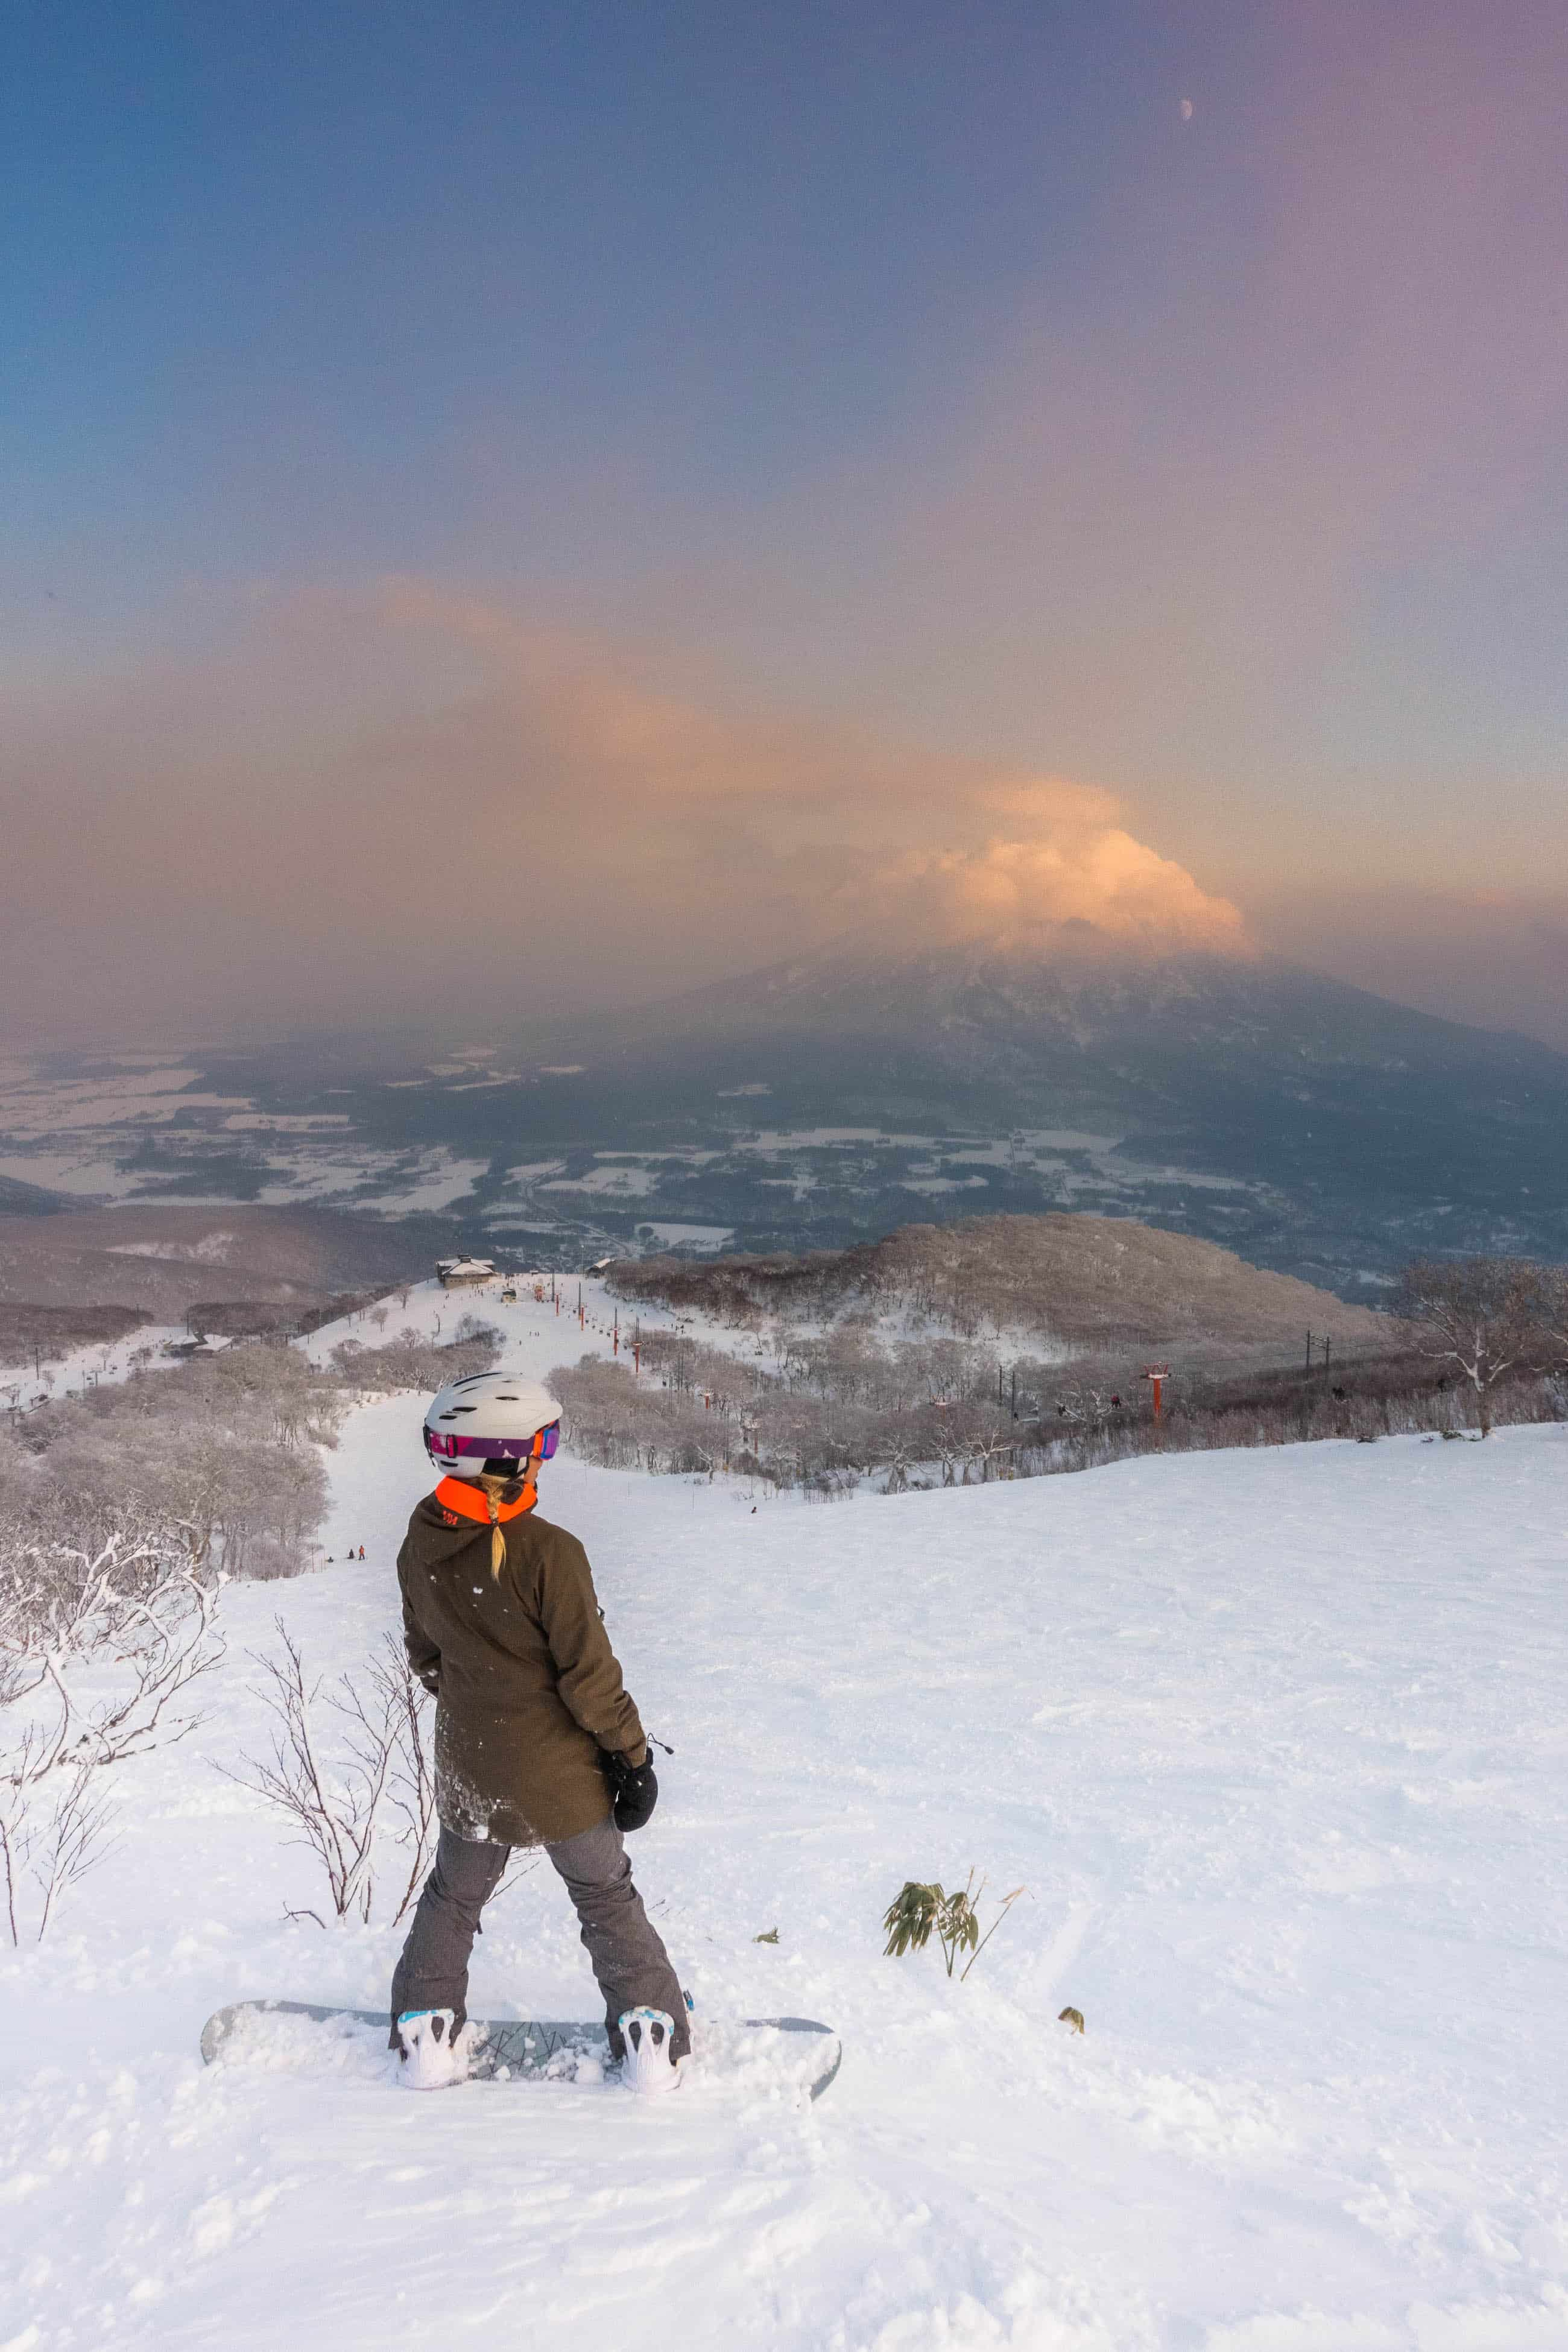 Natasha Standing on the slope of Niseko United looking out to Mt Yotei